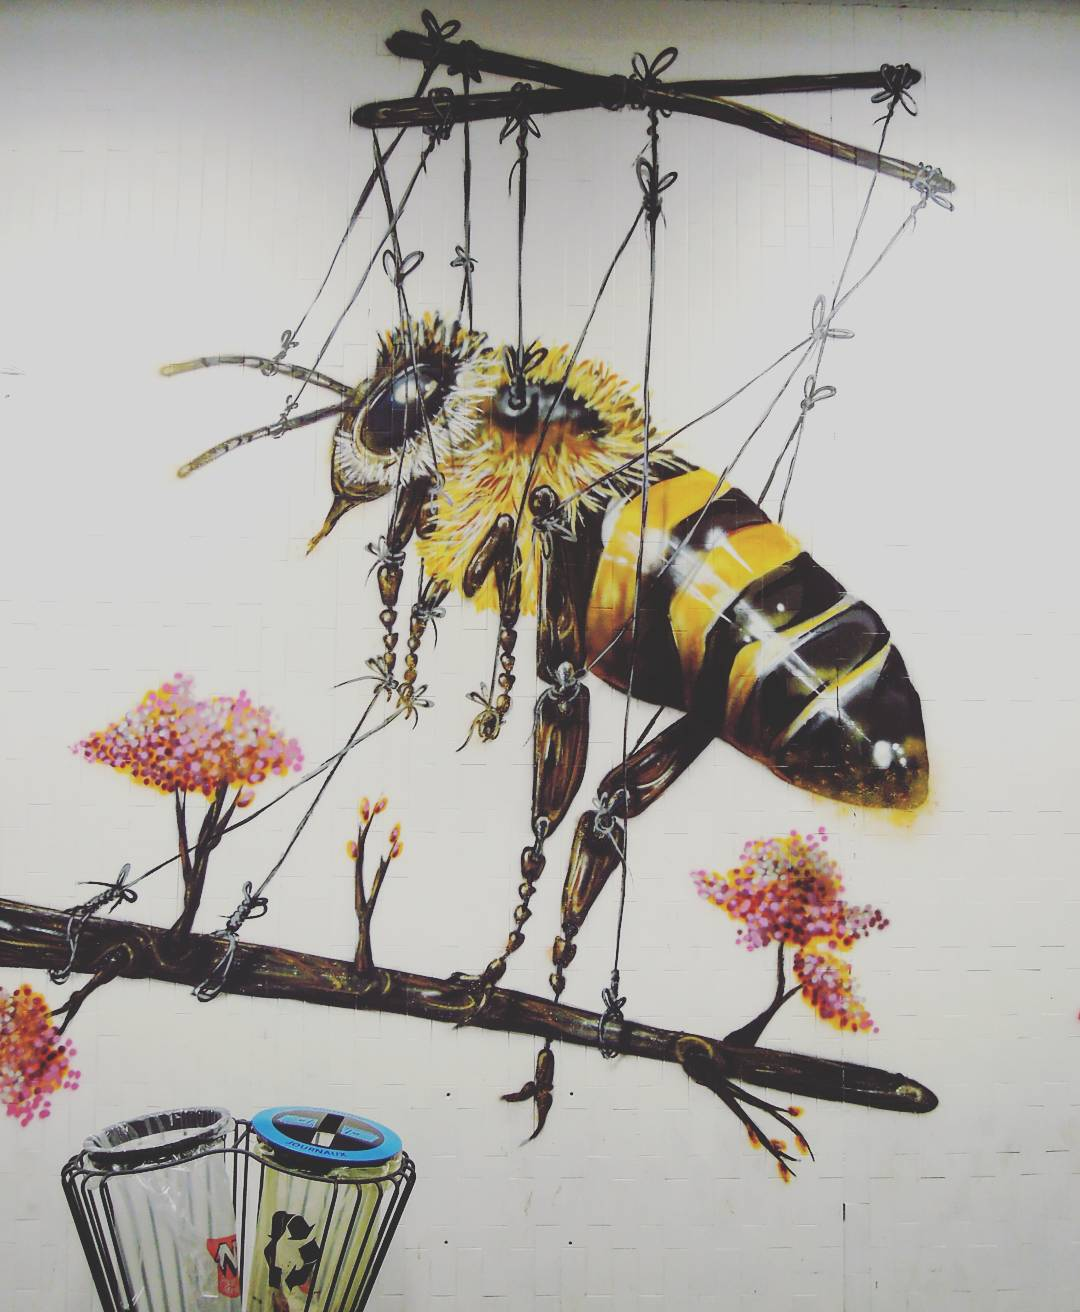 art by louis masai, street art, quai 36, gare du nord, wildstreet